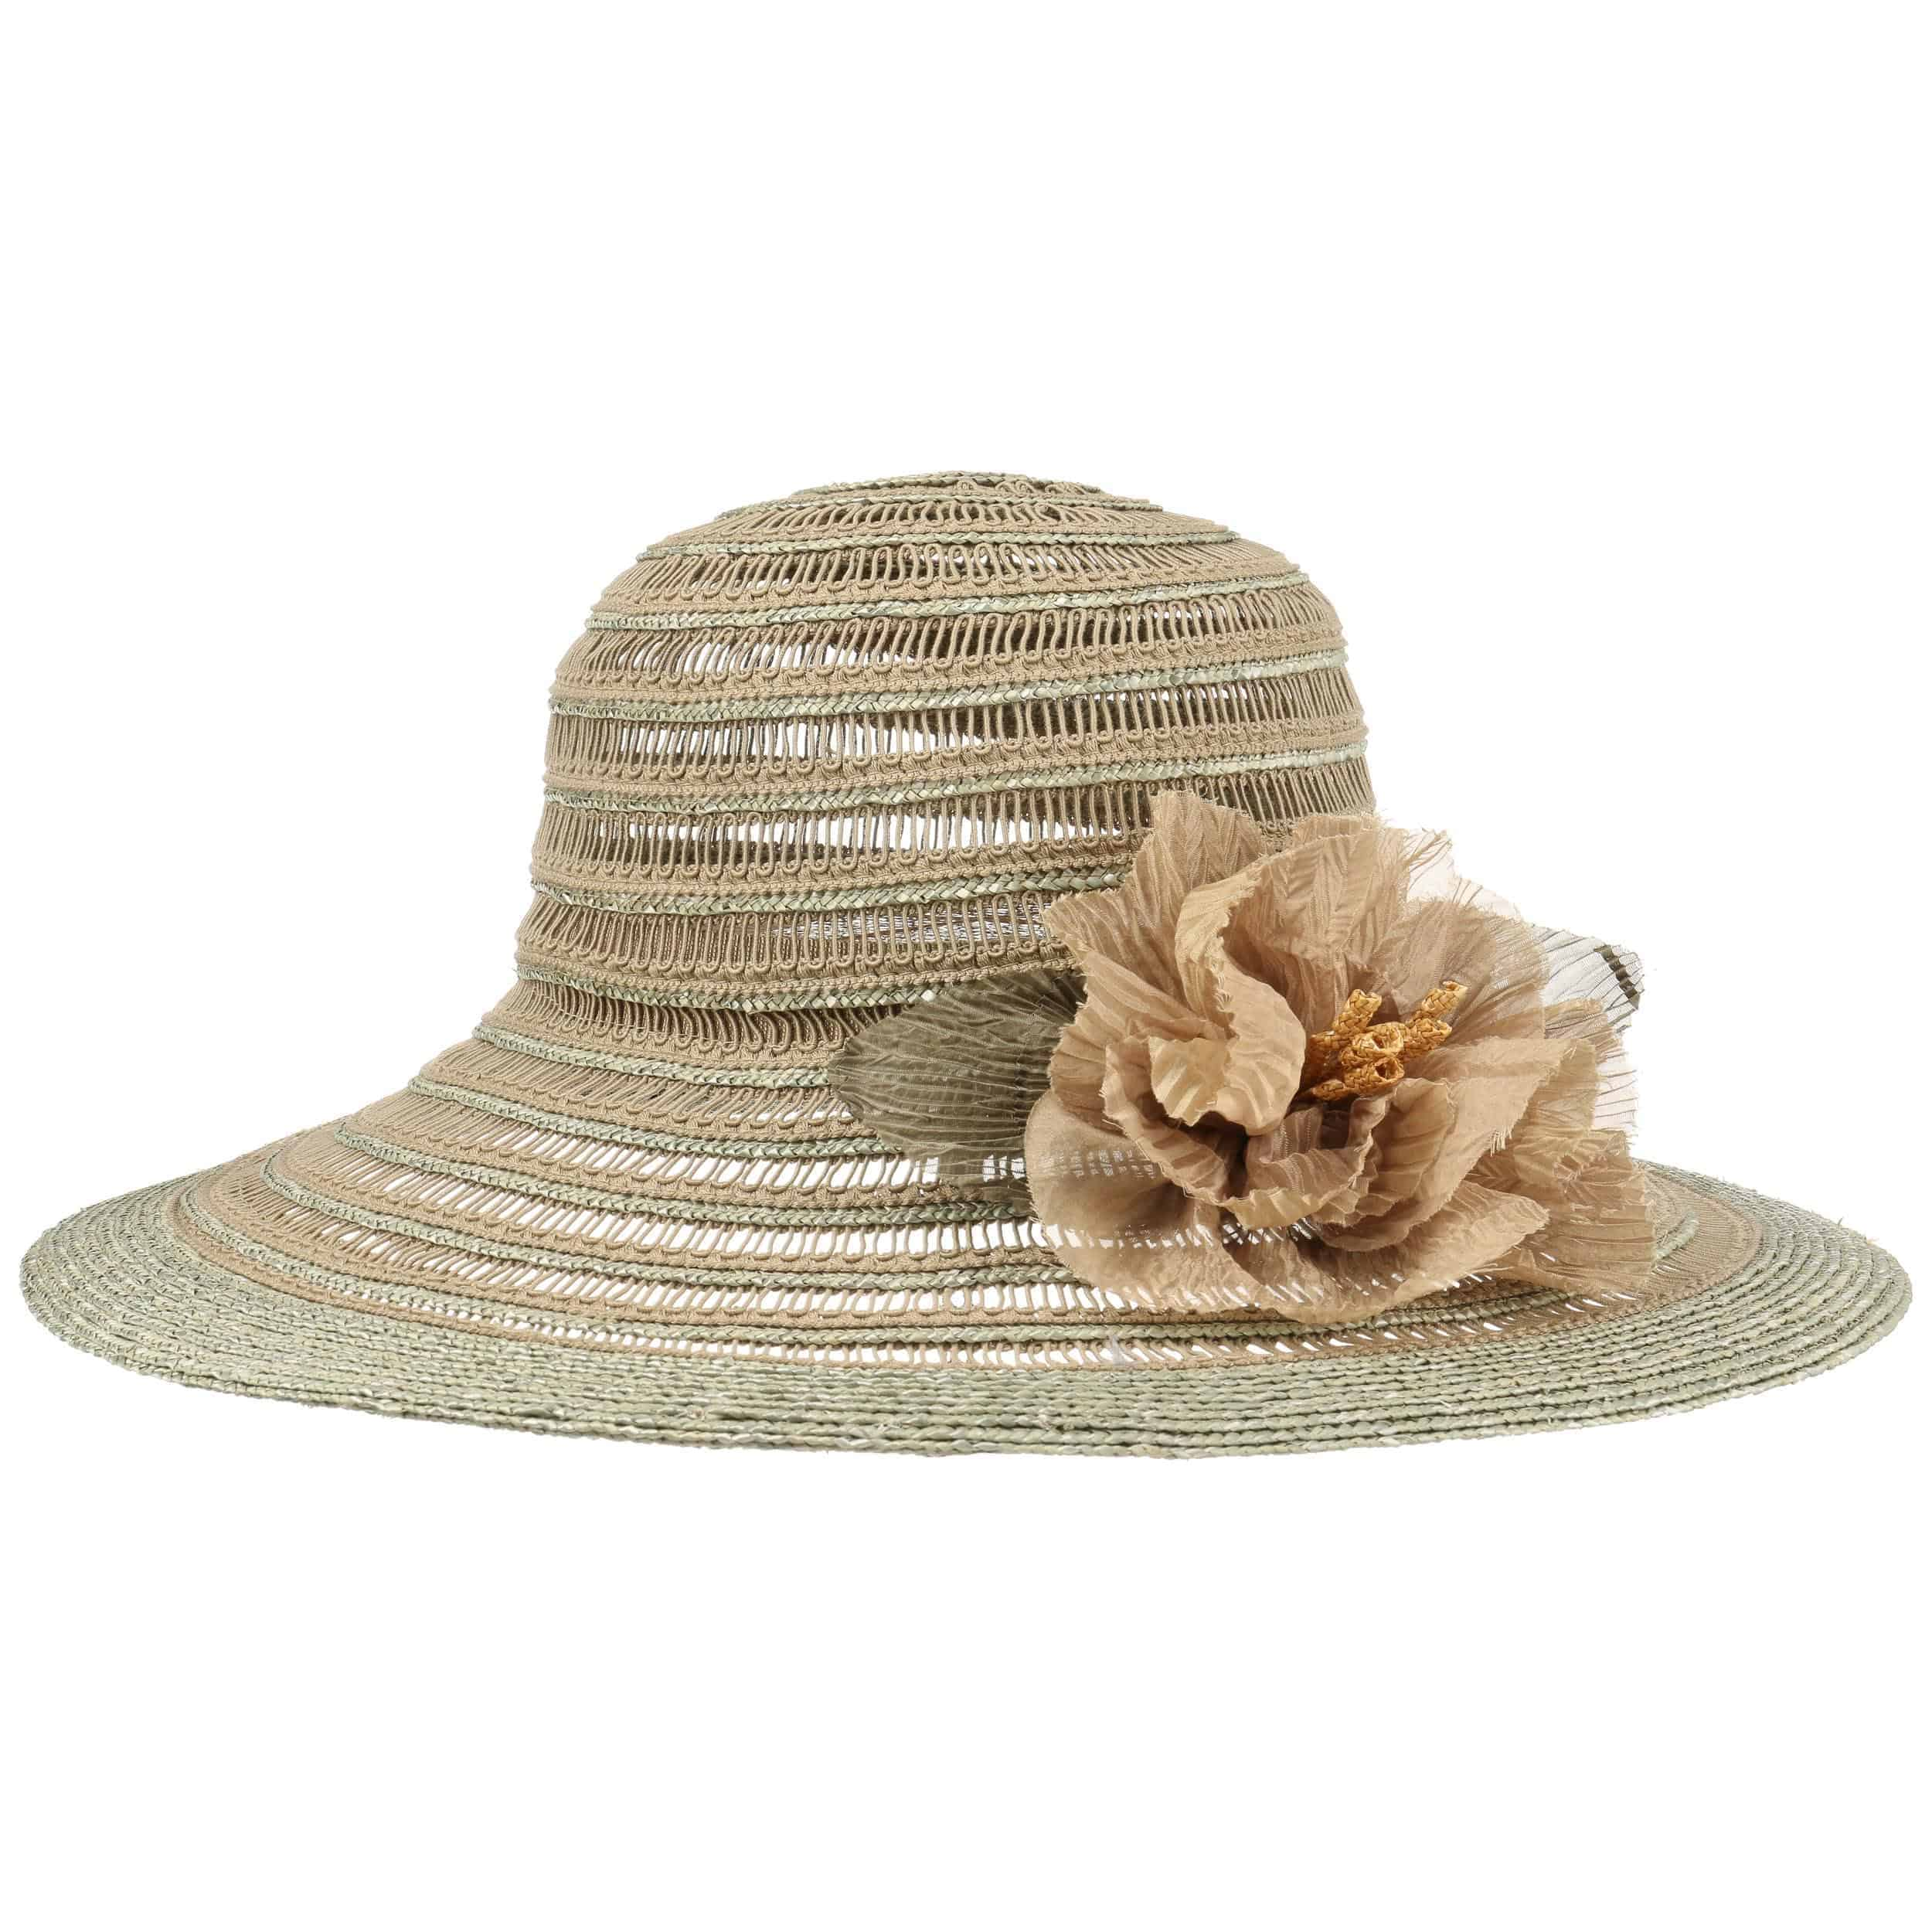 d8eac721aed Grevi Hats Made In Italy And Italian Style For Four Generations